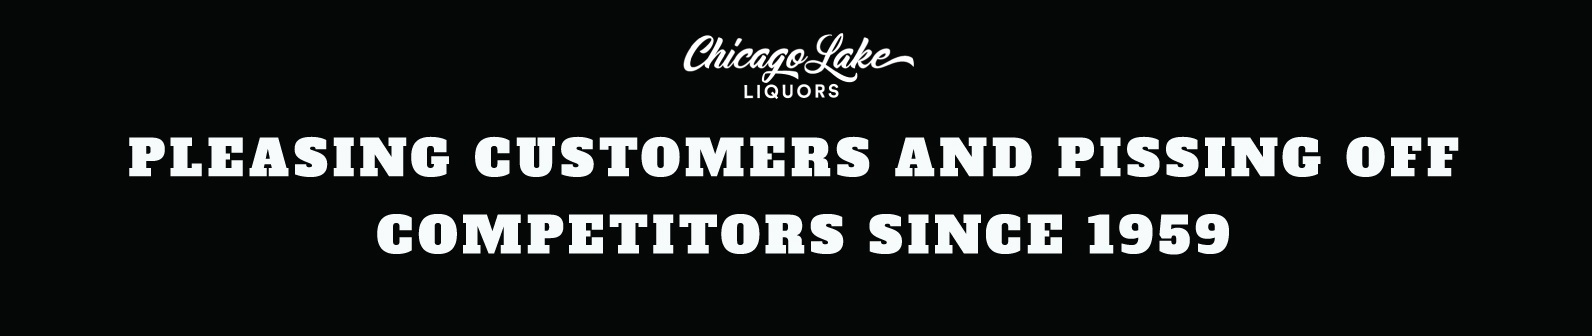 ChicagoLake_PleasingCustomers_WEb.jpg